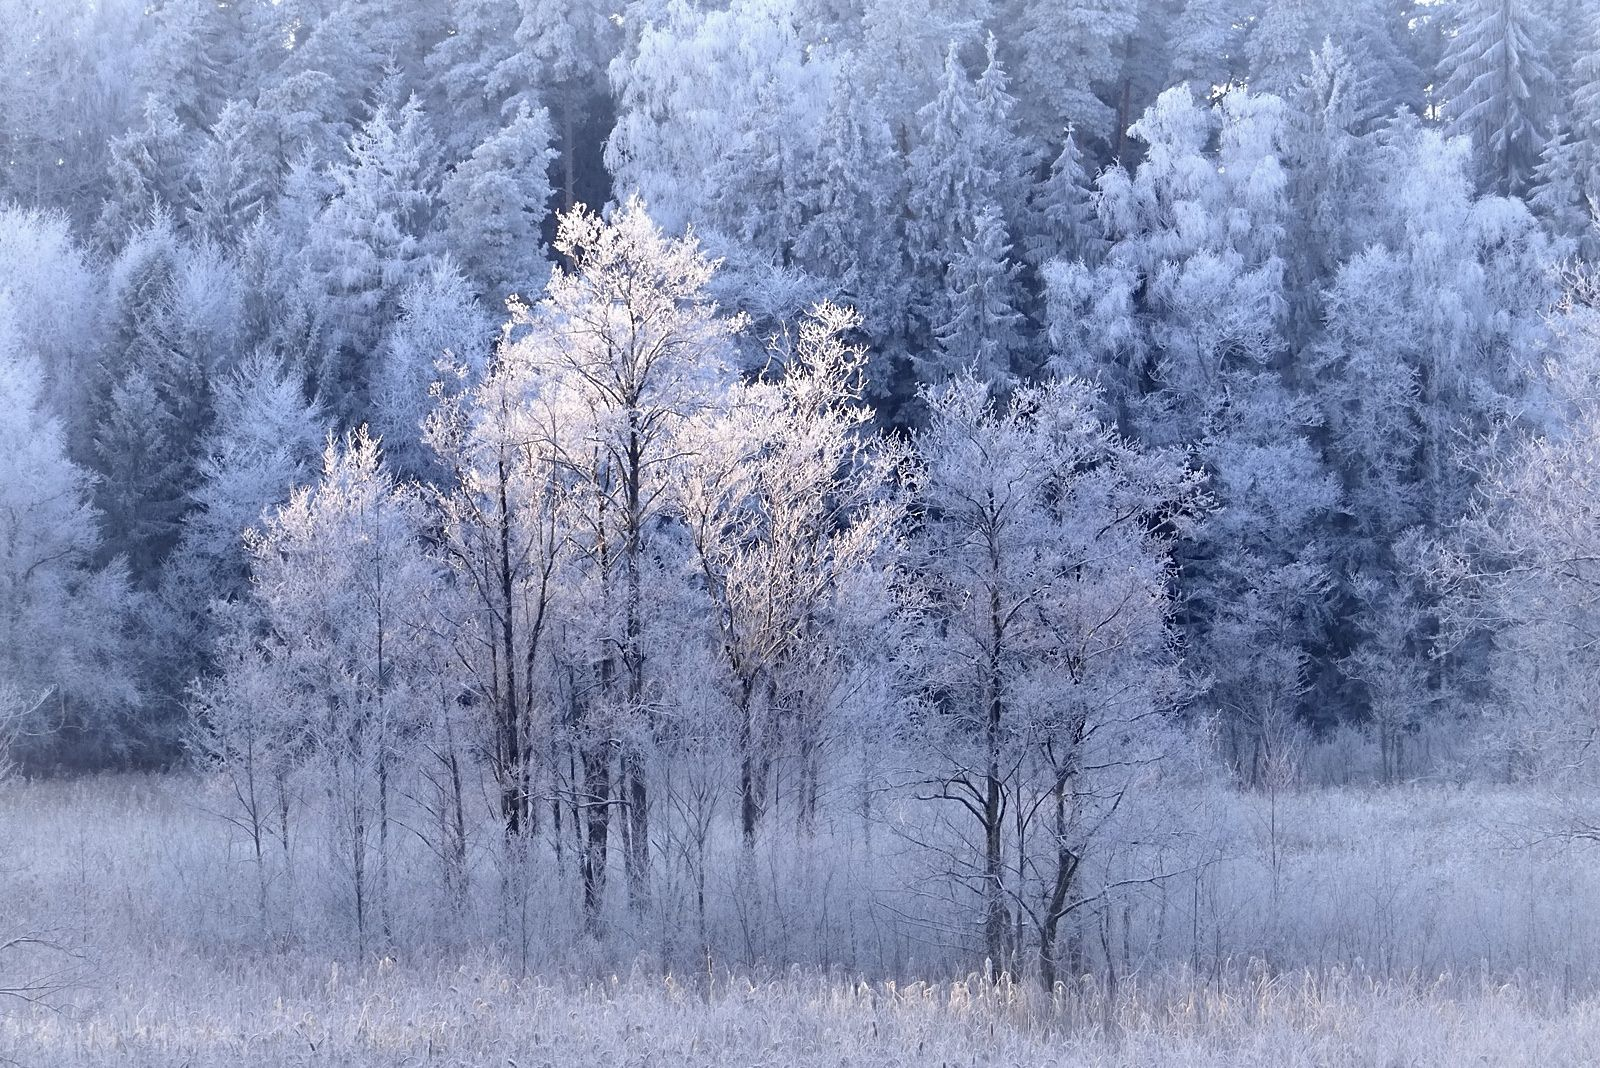 Forest by ** REgiNA ** on 500px (With images) | Frosty kingdom, Photo, Frosty